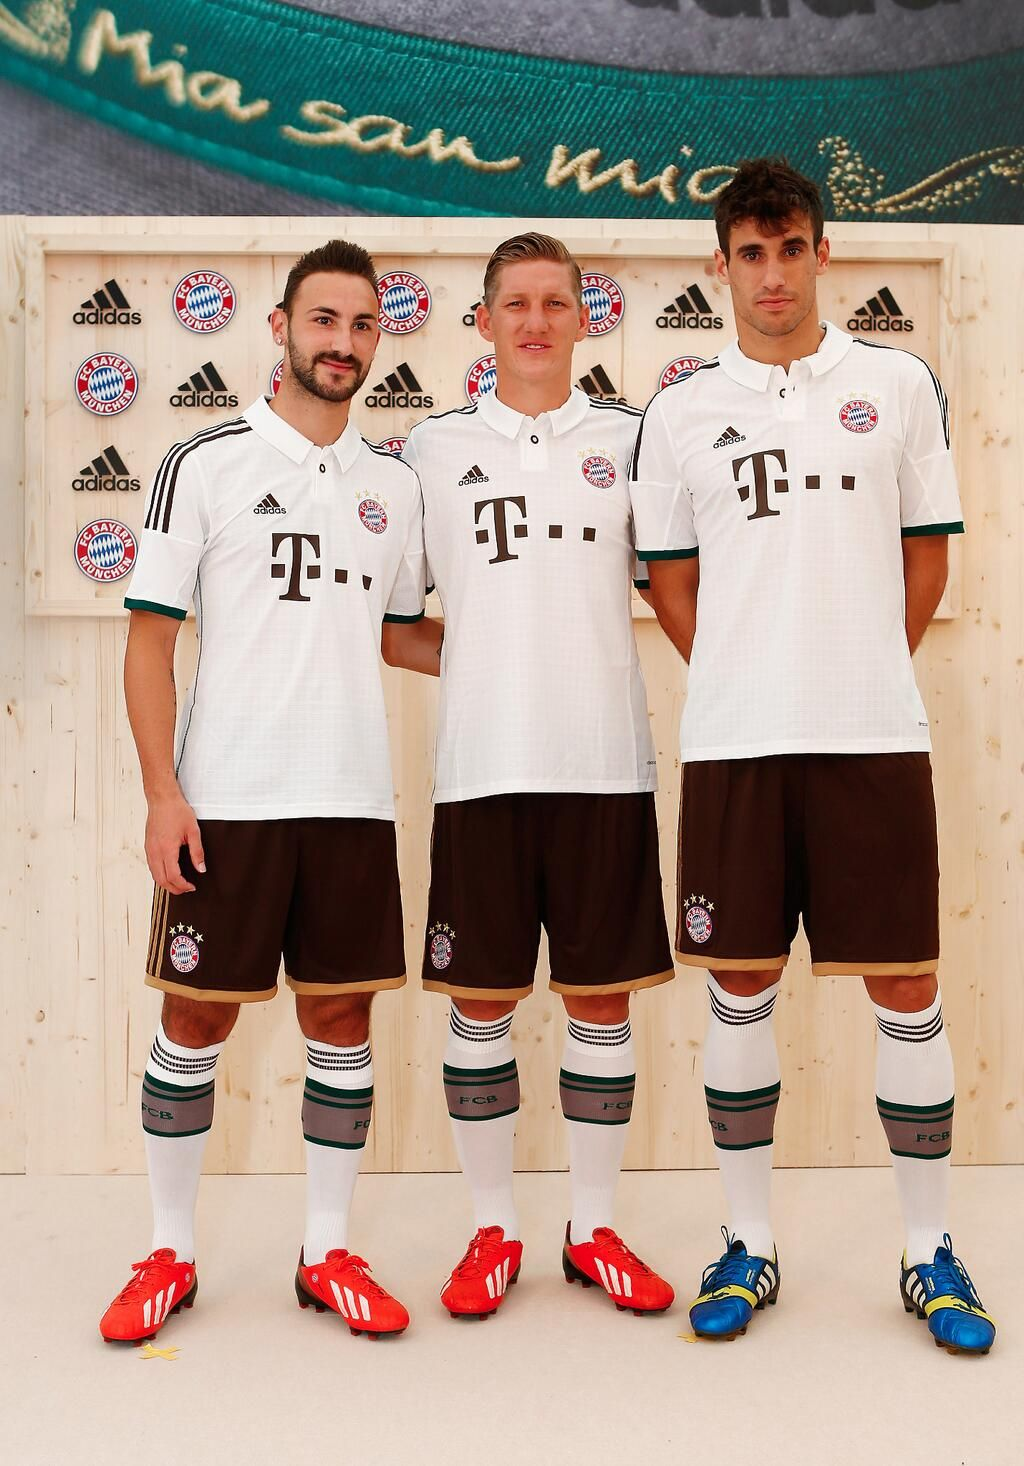 Show off your Bavarian style in the new 2013/14 adidas FC